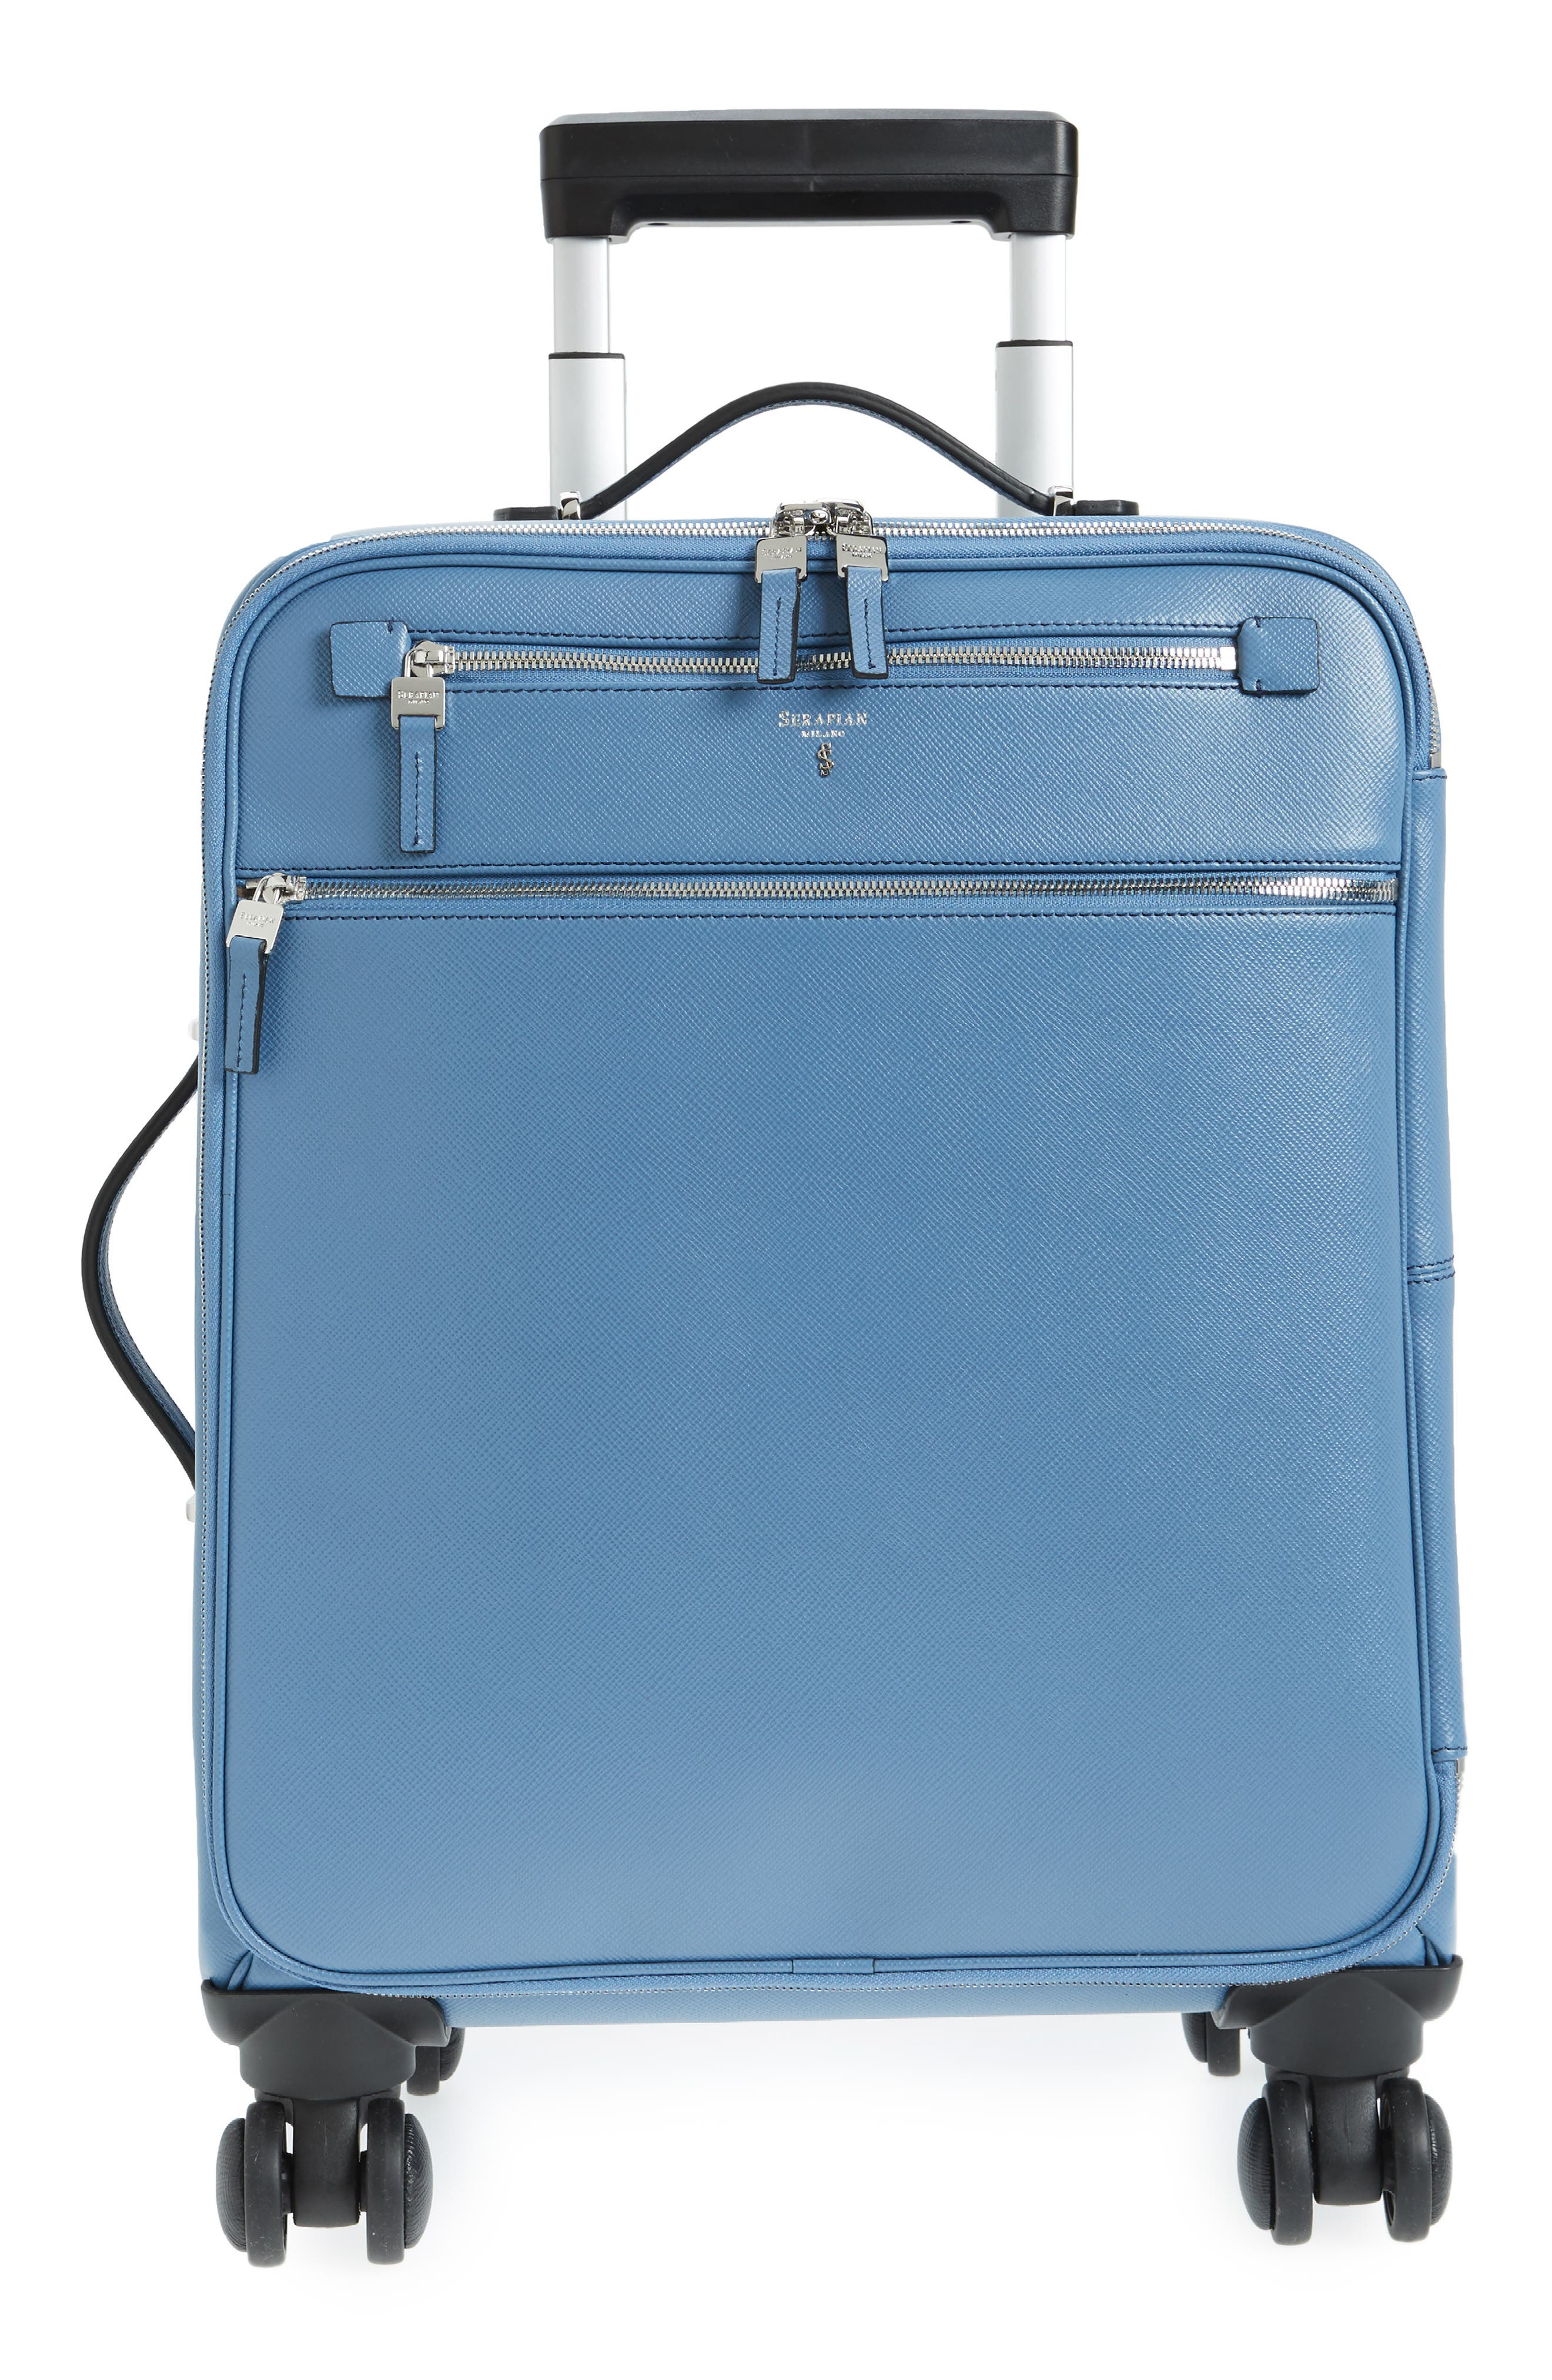 Trolley Spinner Wheeled Carry-On Suitcase,                             Main thumbnail 3, color,